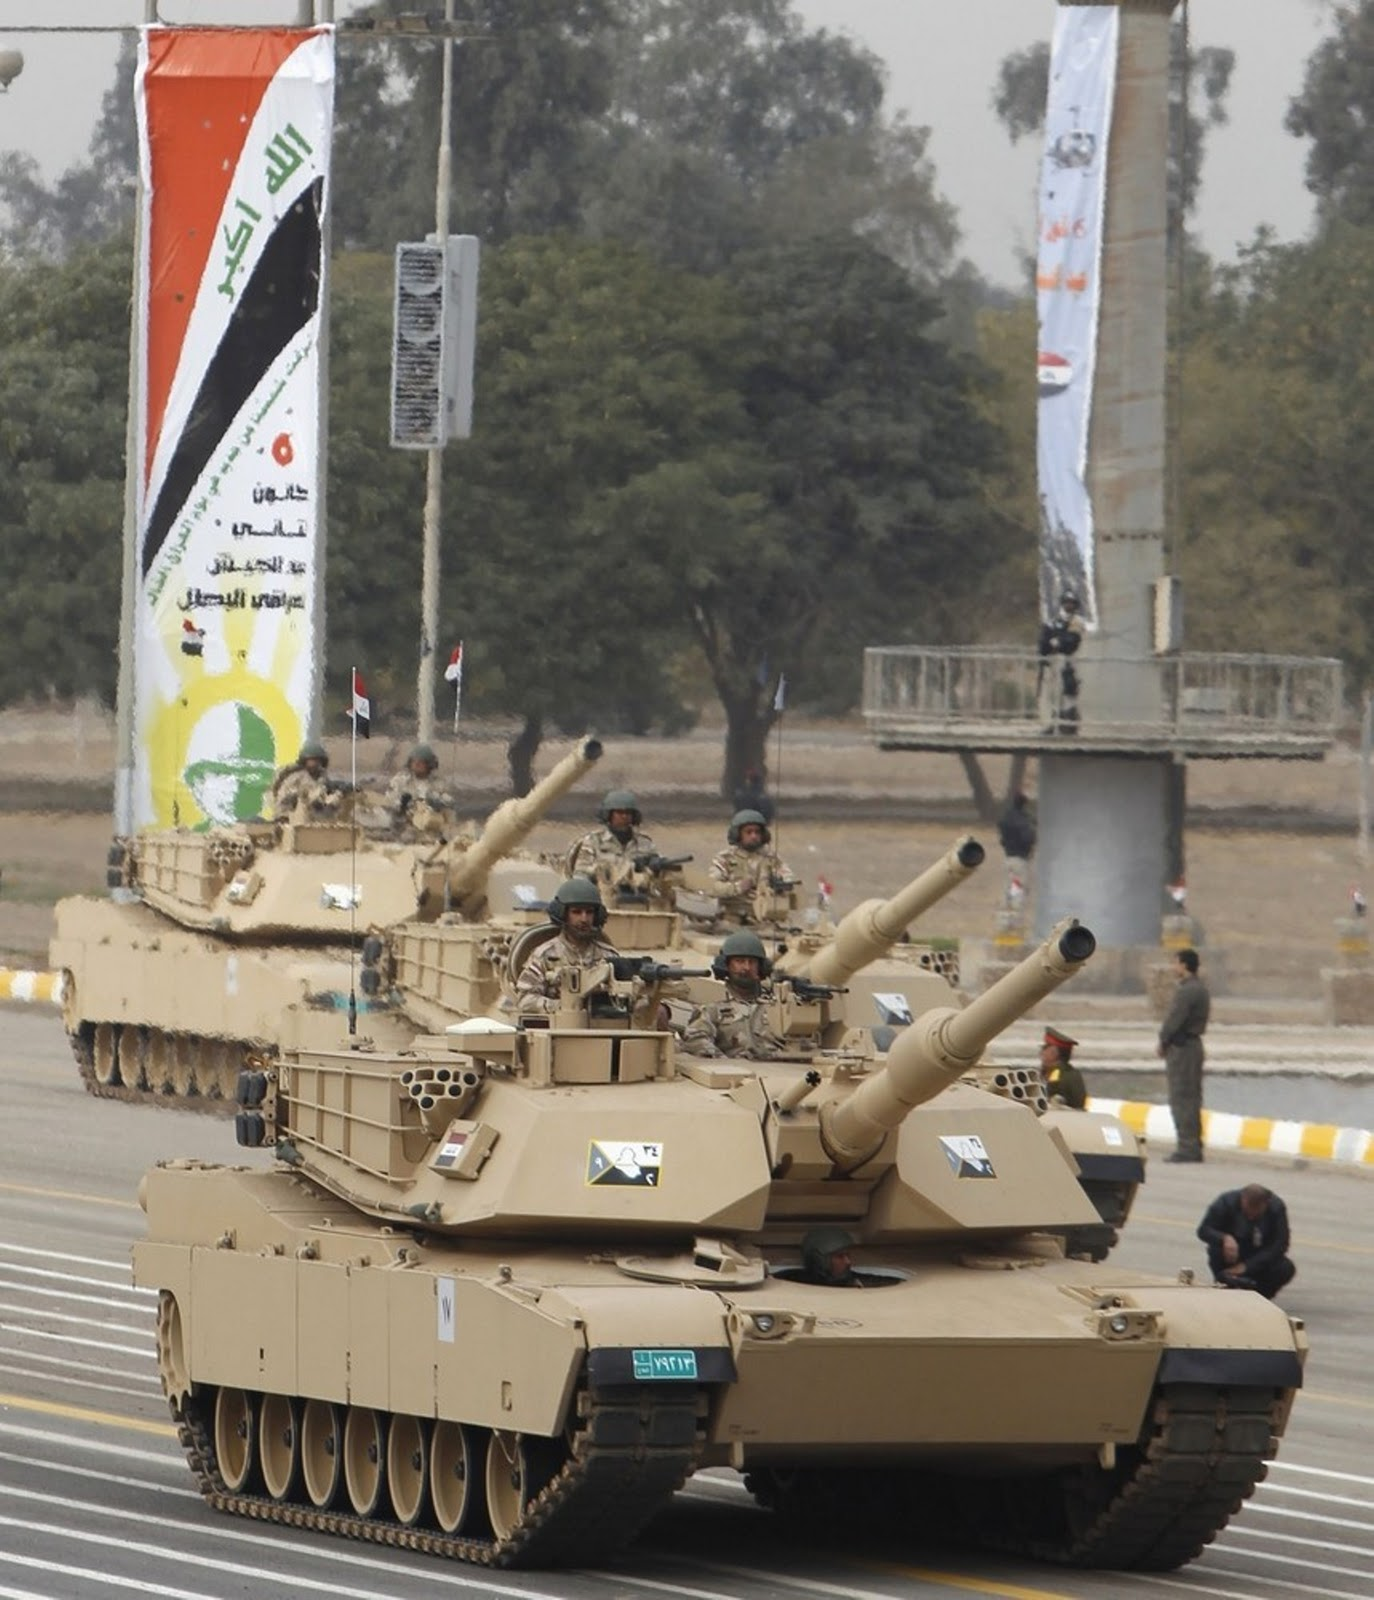 Armée Irakienne Iraqi+Army+soldiers+are+seen+on+M1A1+Abrams+third-generation+main+battle+tank+produced+in+the+United+States+at+the+Monument+of+the+Unknown+Soldier+during+the+Army+Day+celebrations+in+Baghdad%252C+%25281%2529